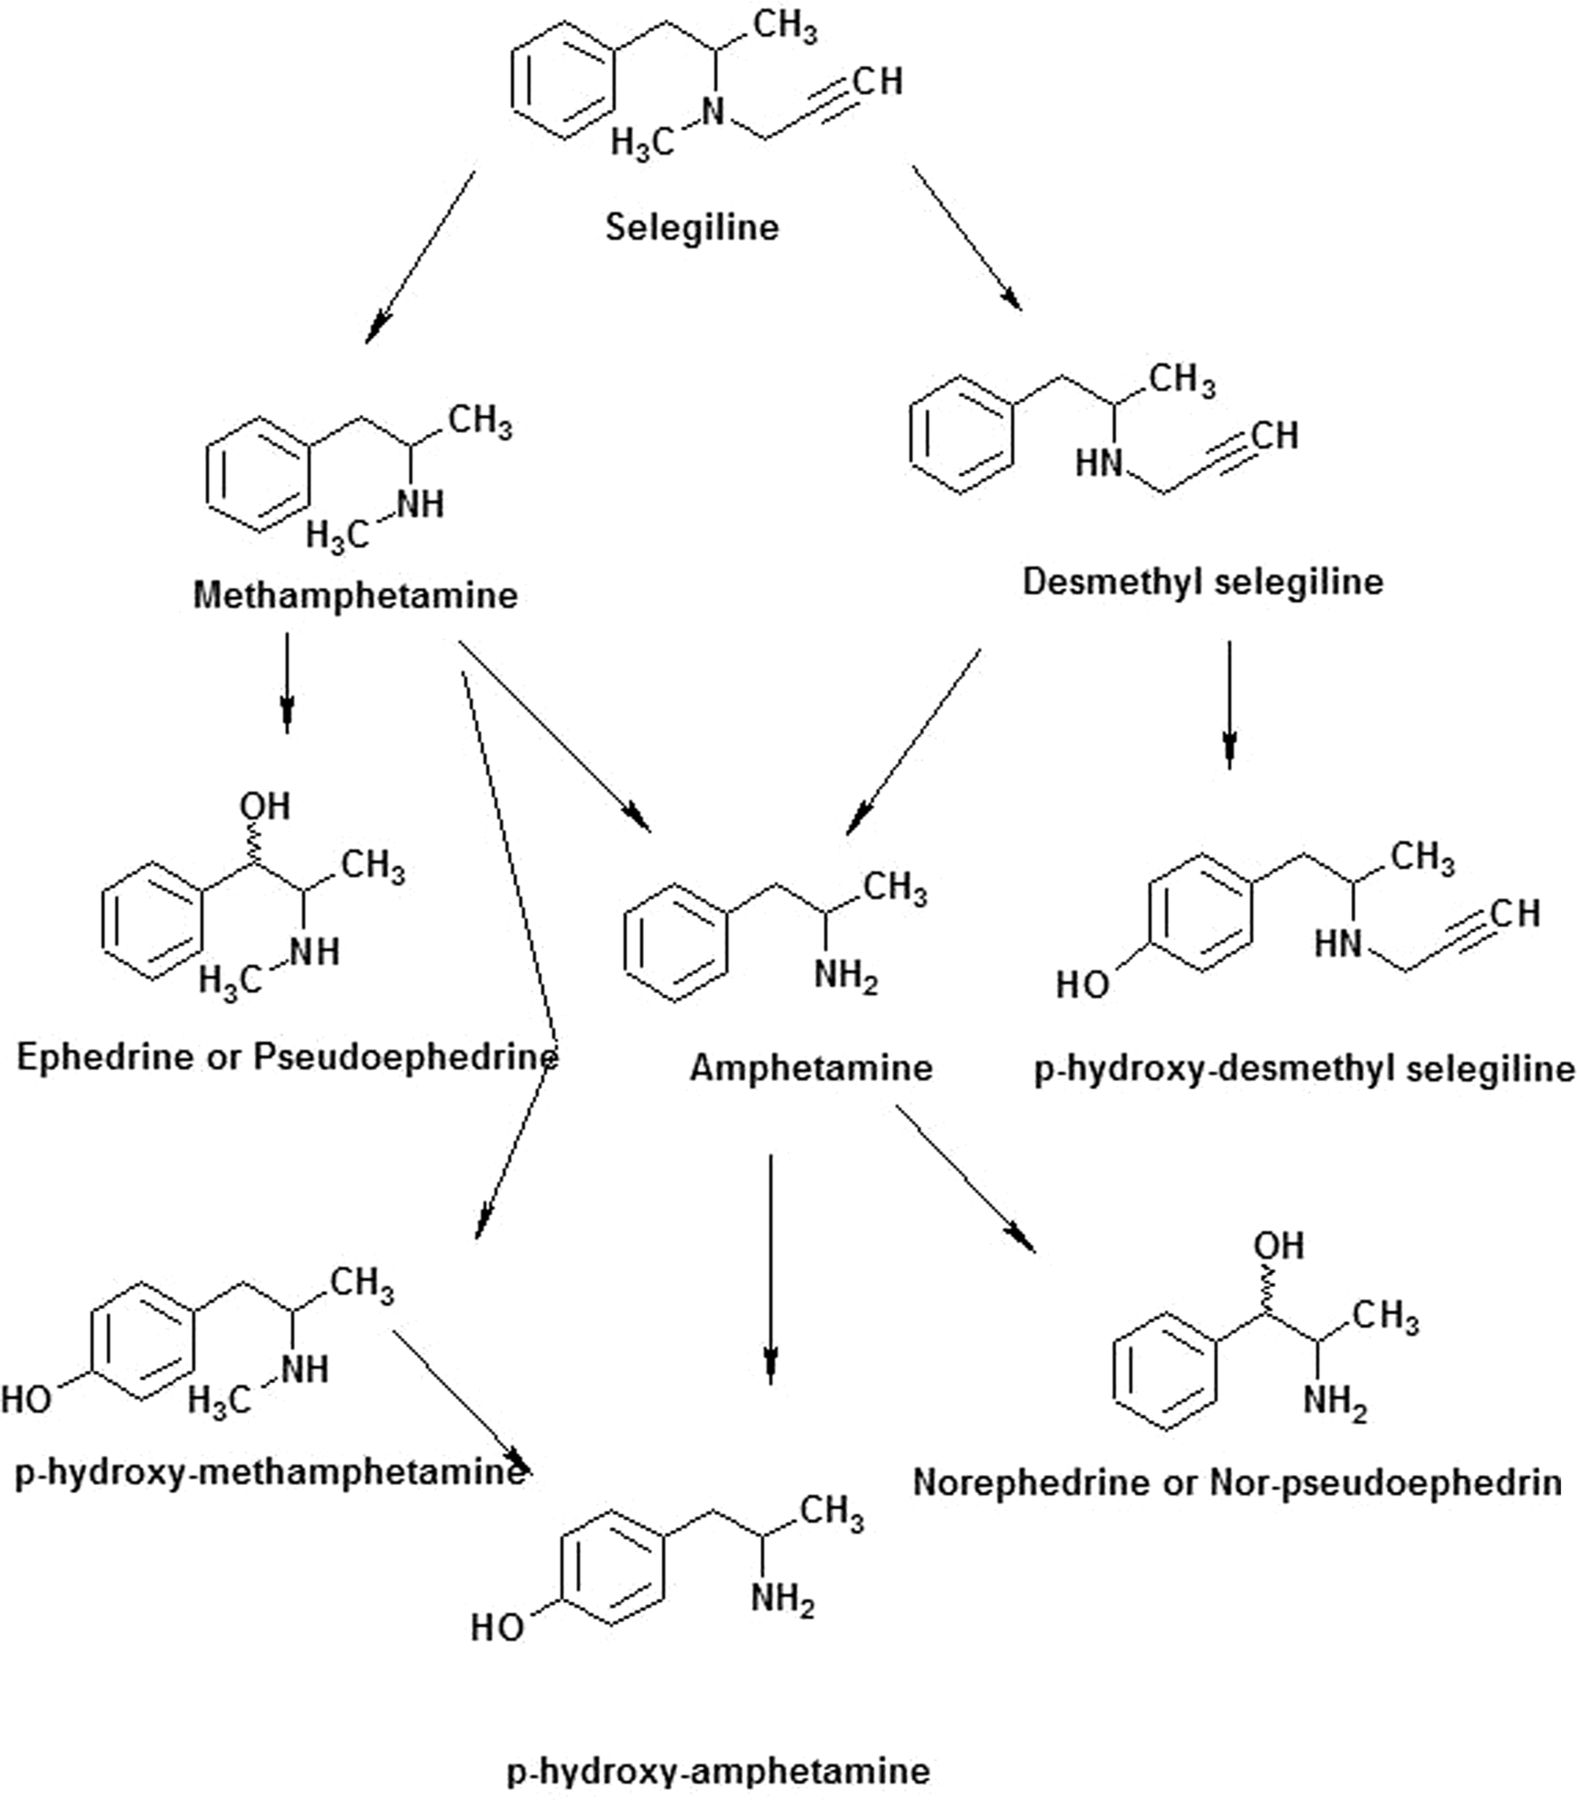 Inhibition of Bupropion Metabolism by Selegiline: Mechanism-Based